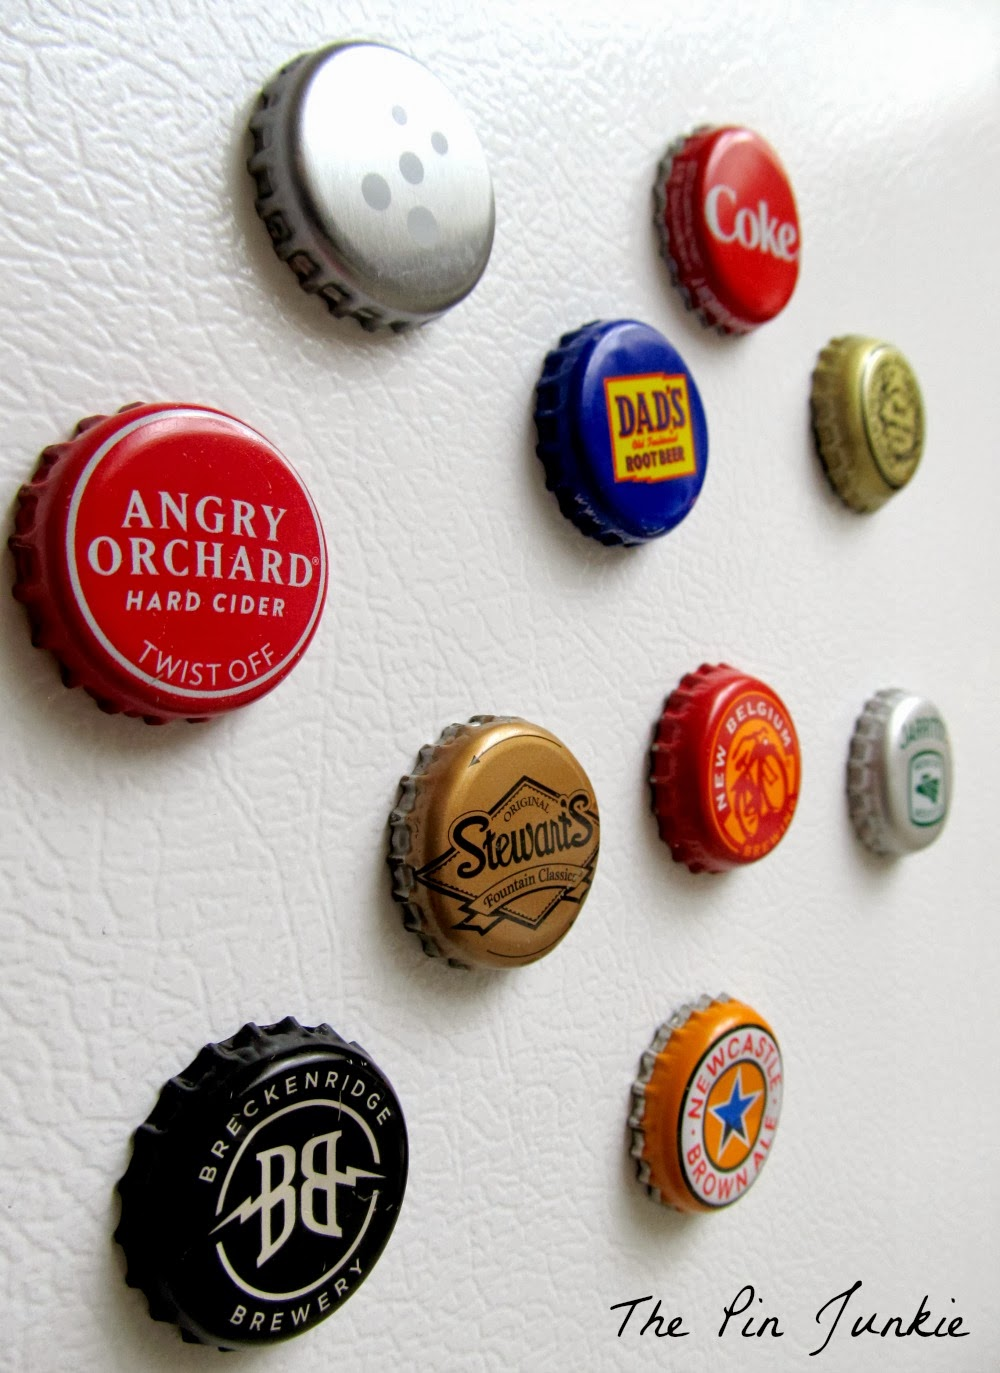 http://www.thepinjunkie.com/2014/02/bottle-cap-magnets.html